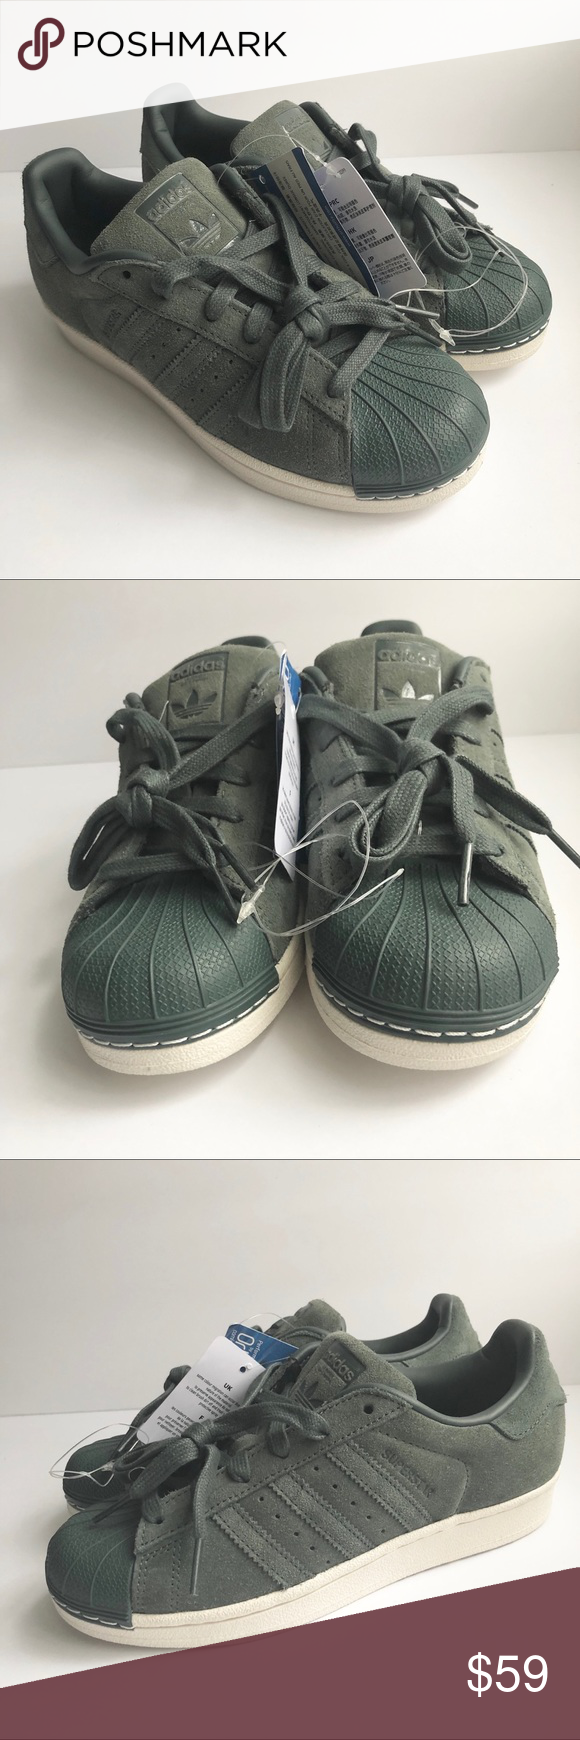 a3964b8837b Adidas Gray Green Suede Superstar Sneakers NWT W6 These are a great grayish- green color